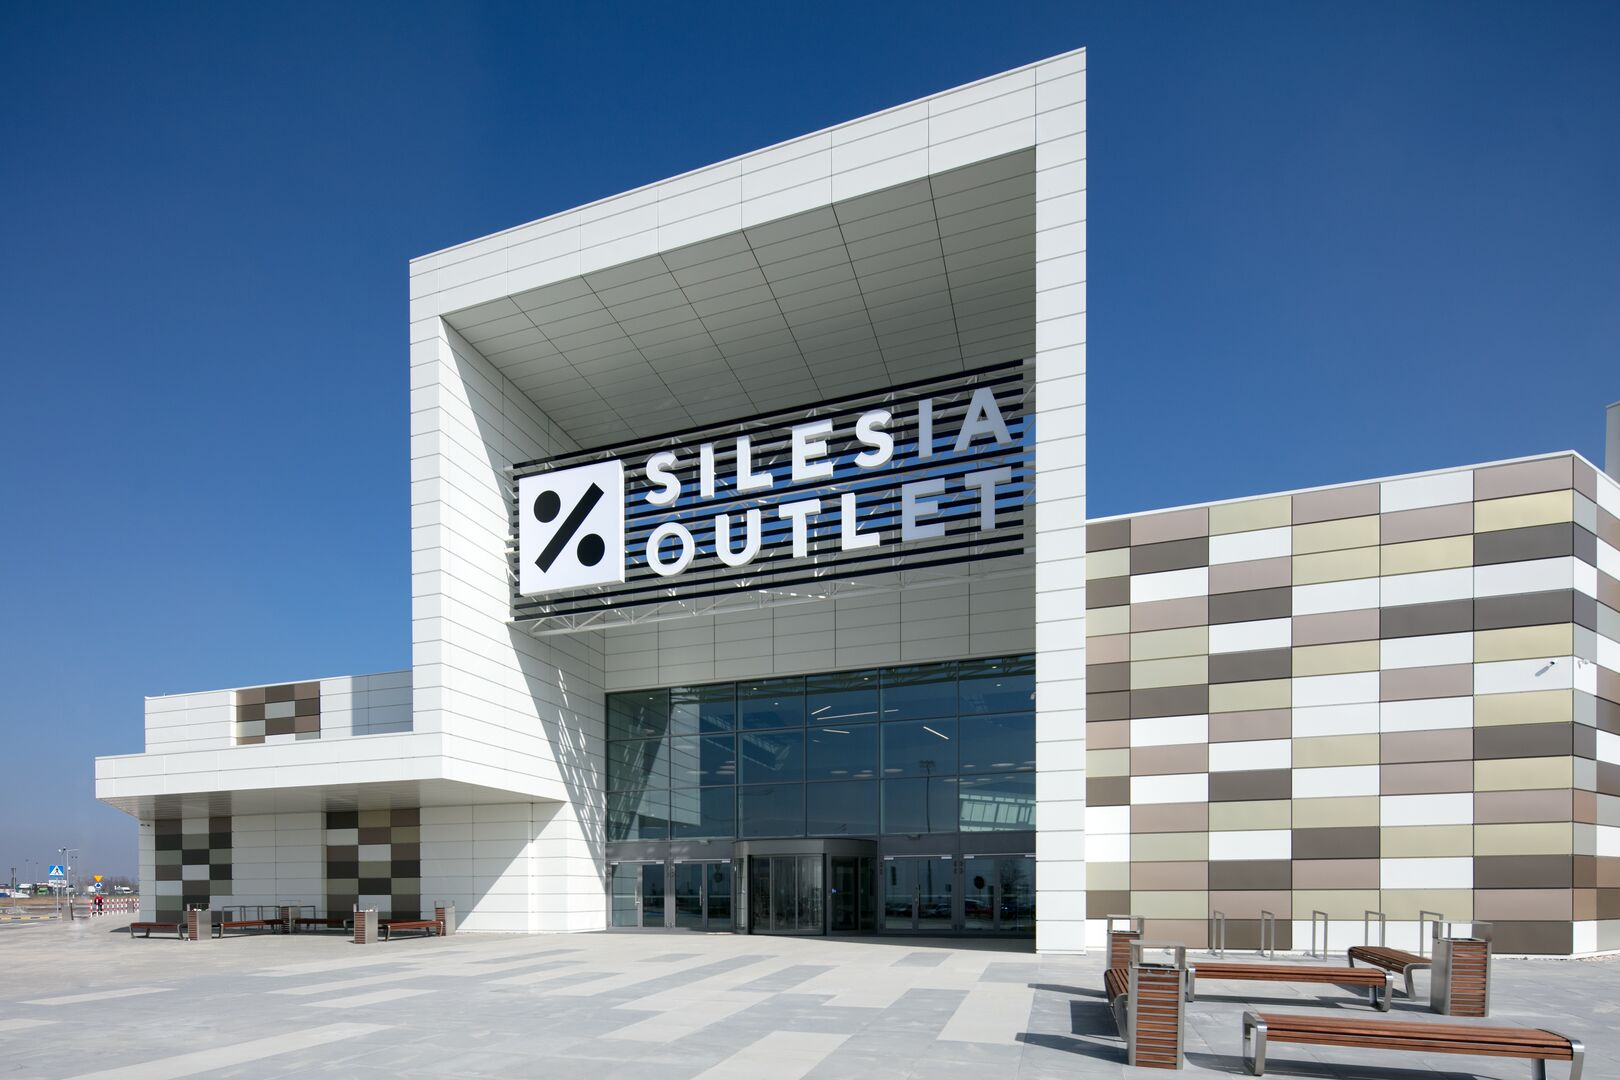 Silesia Shopping Outlet using Colorcoat Prisma